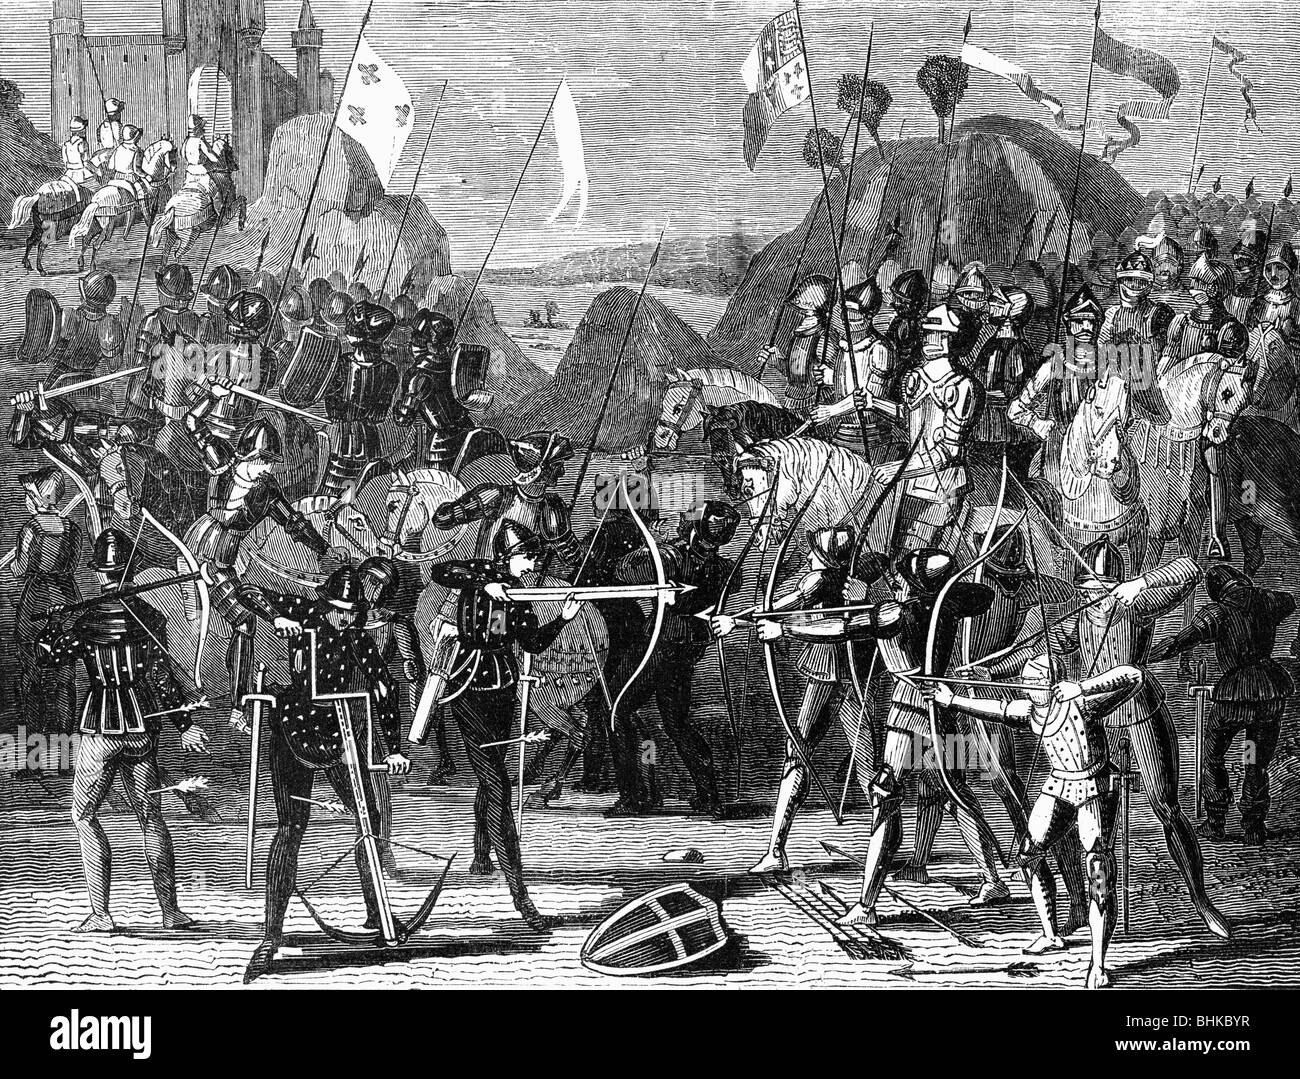 events, Hundred Years' War 1337 - 1453, Battle of Crecy, 26.8.1346, wood engraving, 19th century, middle ages, - Stock Image